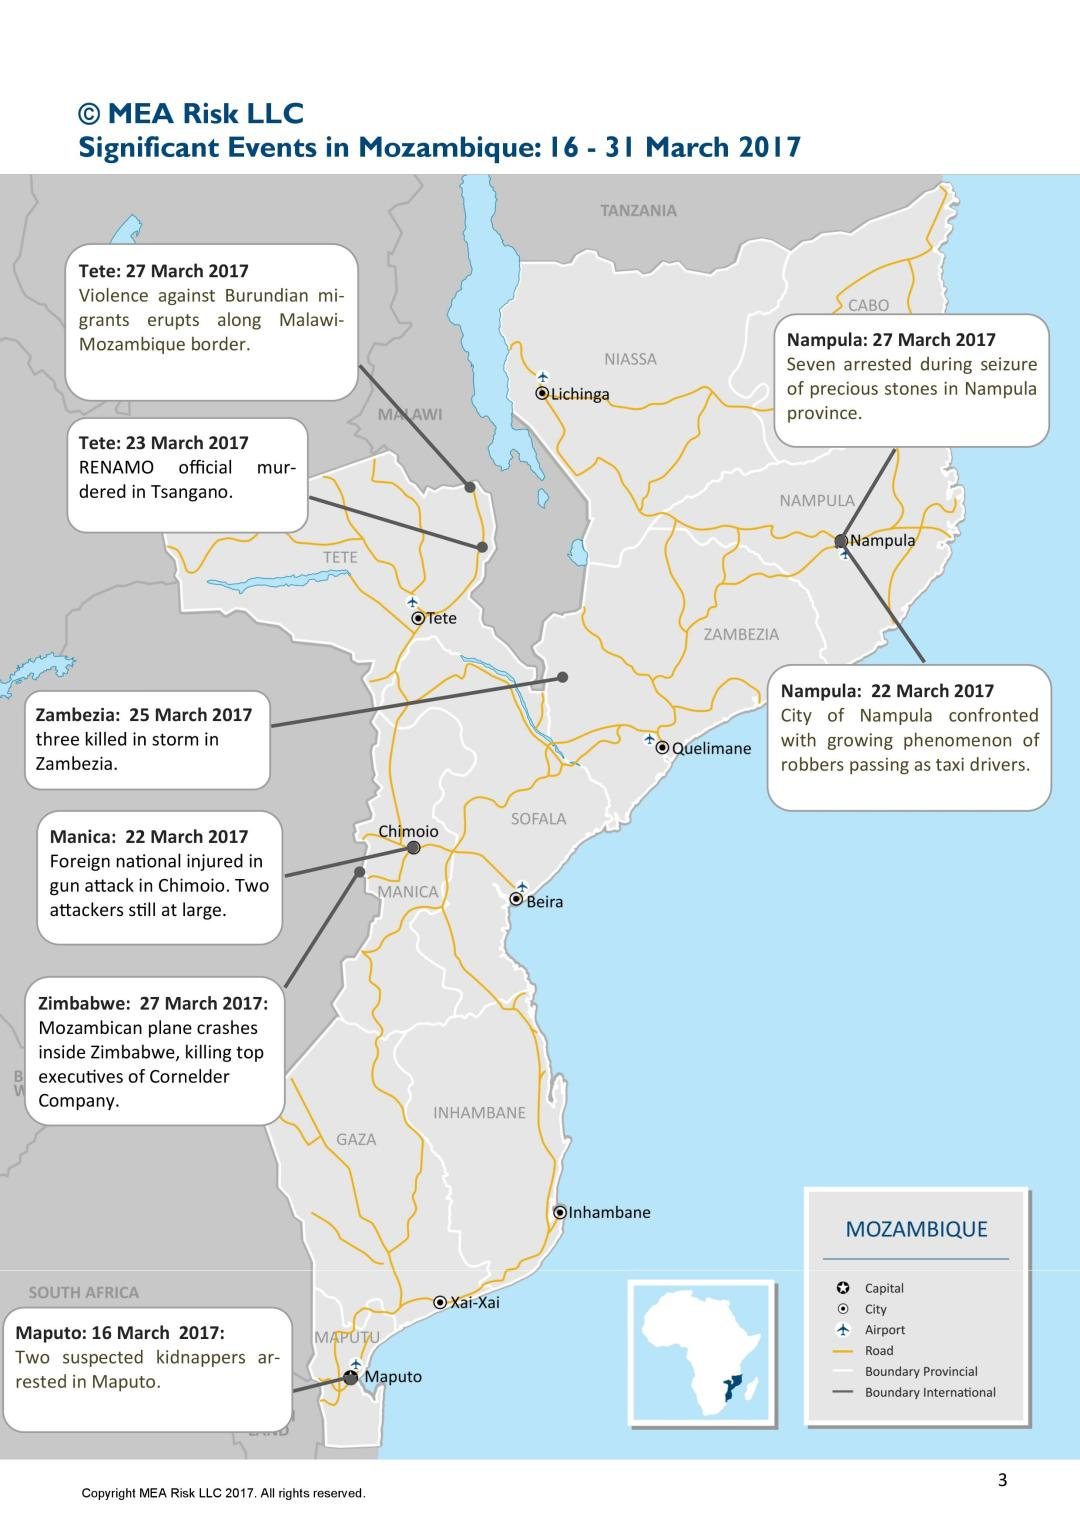 Mozambique's main incidents of 2HMarch 2017